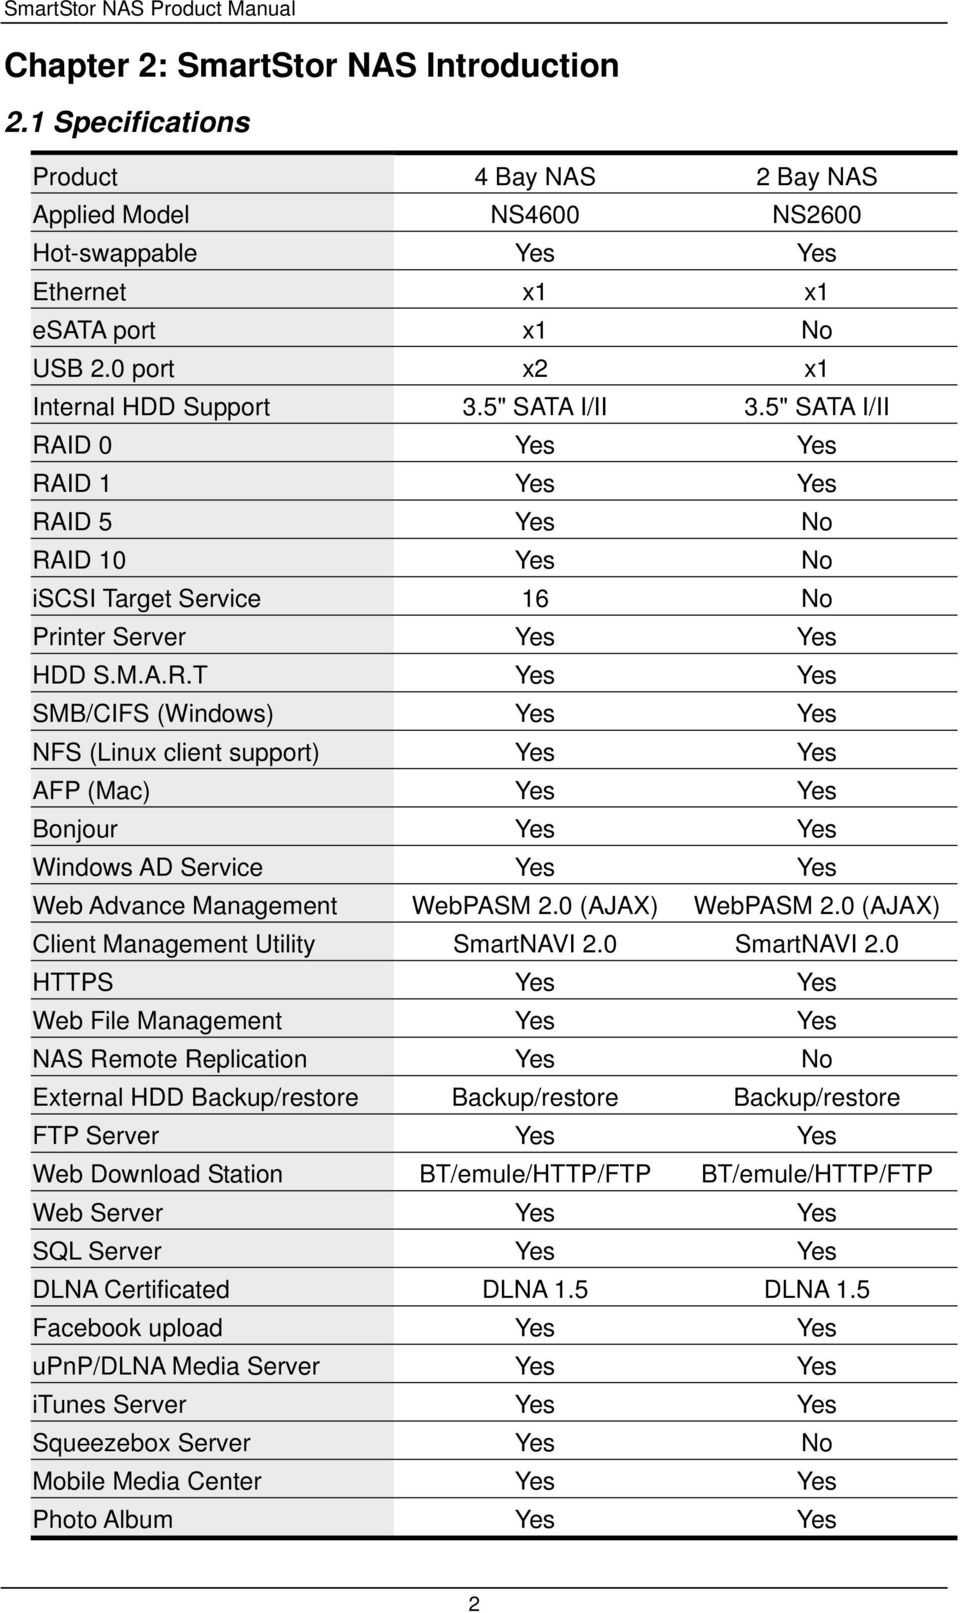 "5"" SATA I/II RAID 0 Yes Yes RAID 1 Yes Yes RAID 5 Yes No RAID 10 Yes No iscsi Target Service 16 No Printer Server Yes Yes HDD S.M.A.R.T Yes Yes SMB/CIFS (Windows) Yes Yes NFS (Linux client support) Yes Yes AFP (Mac) Yes Yes Bonjour Yes Yes Windows AD Service Yes Yes Web Advance Management WebPASM 2."